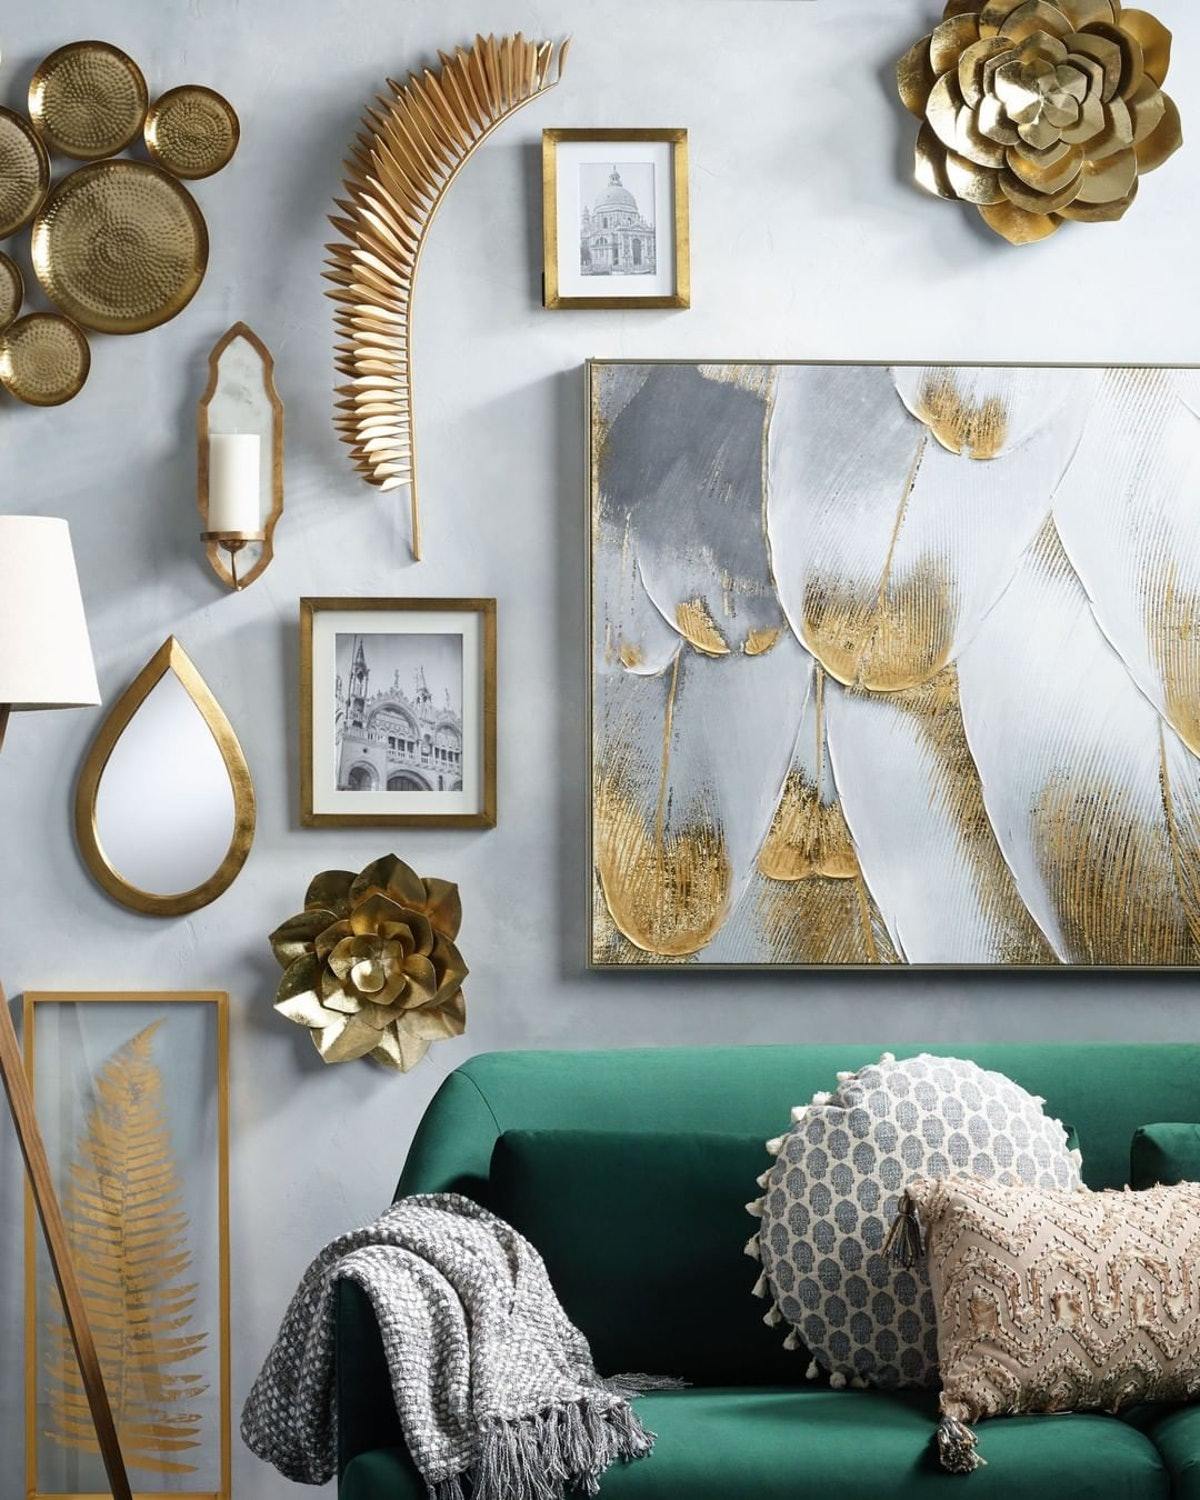 World Market Wall Decor Under $100 That Will Give Your Living Room Some Life